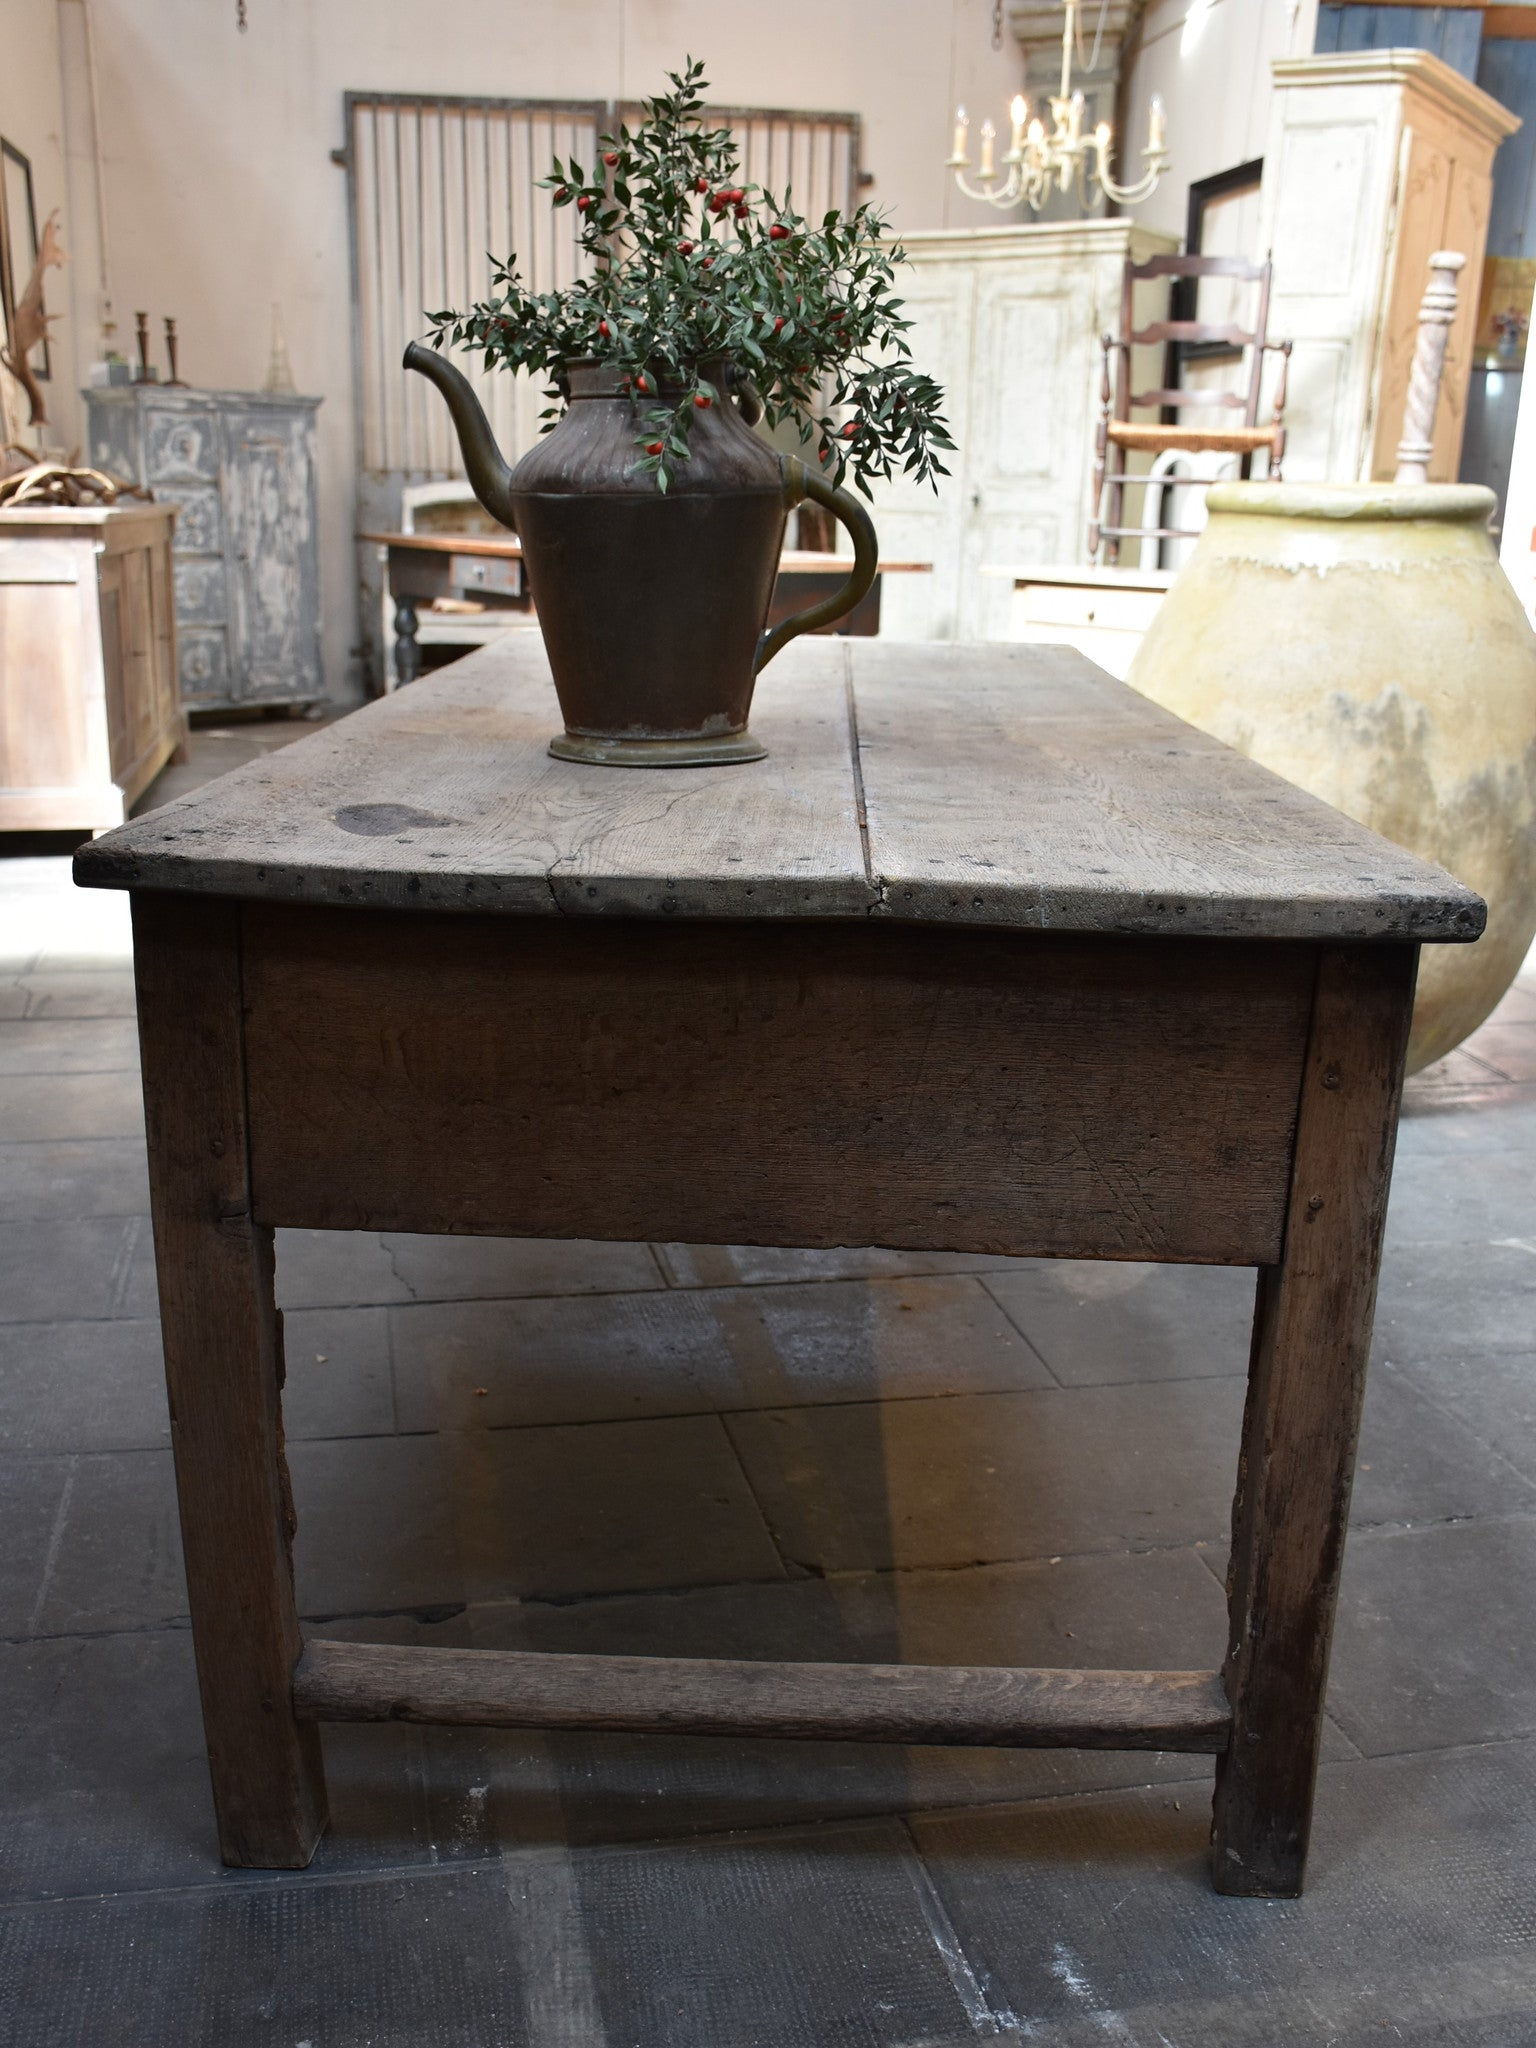 Antique French country farm table – 19th century